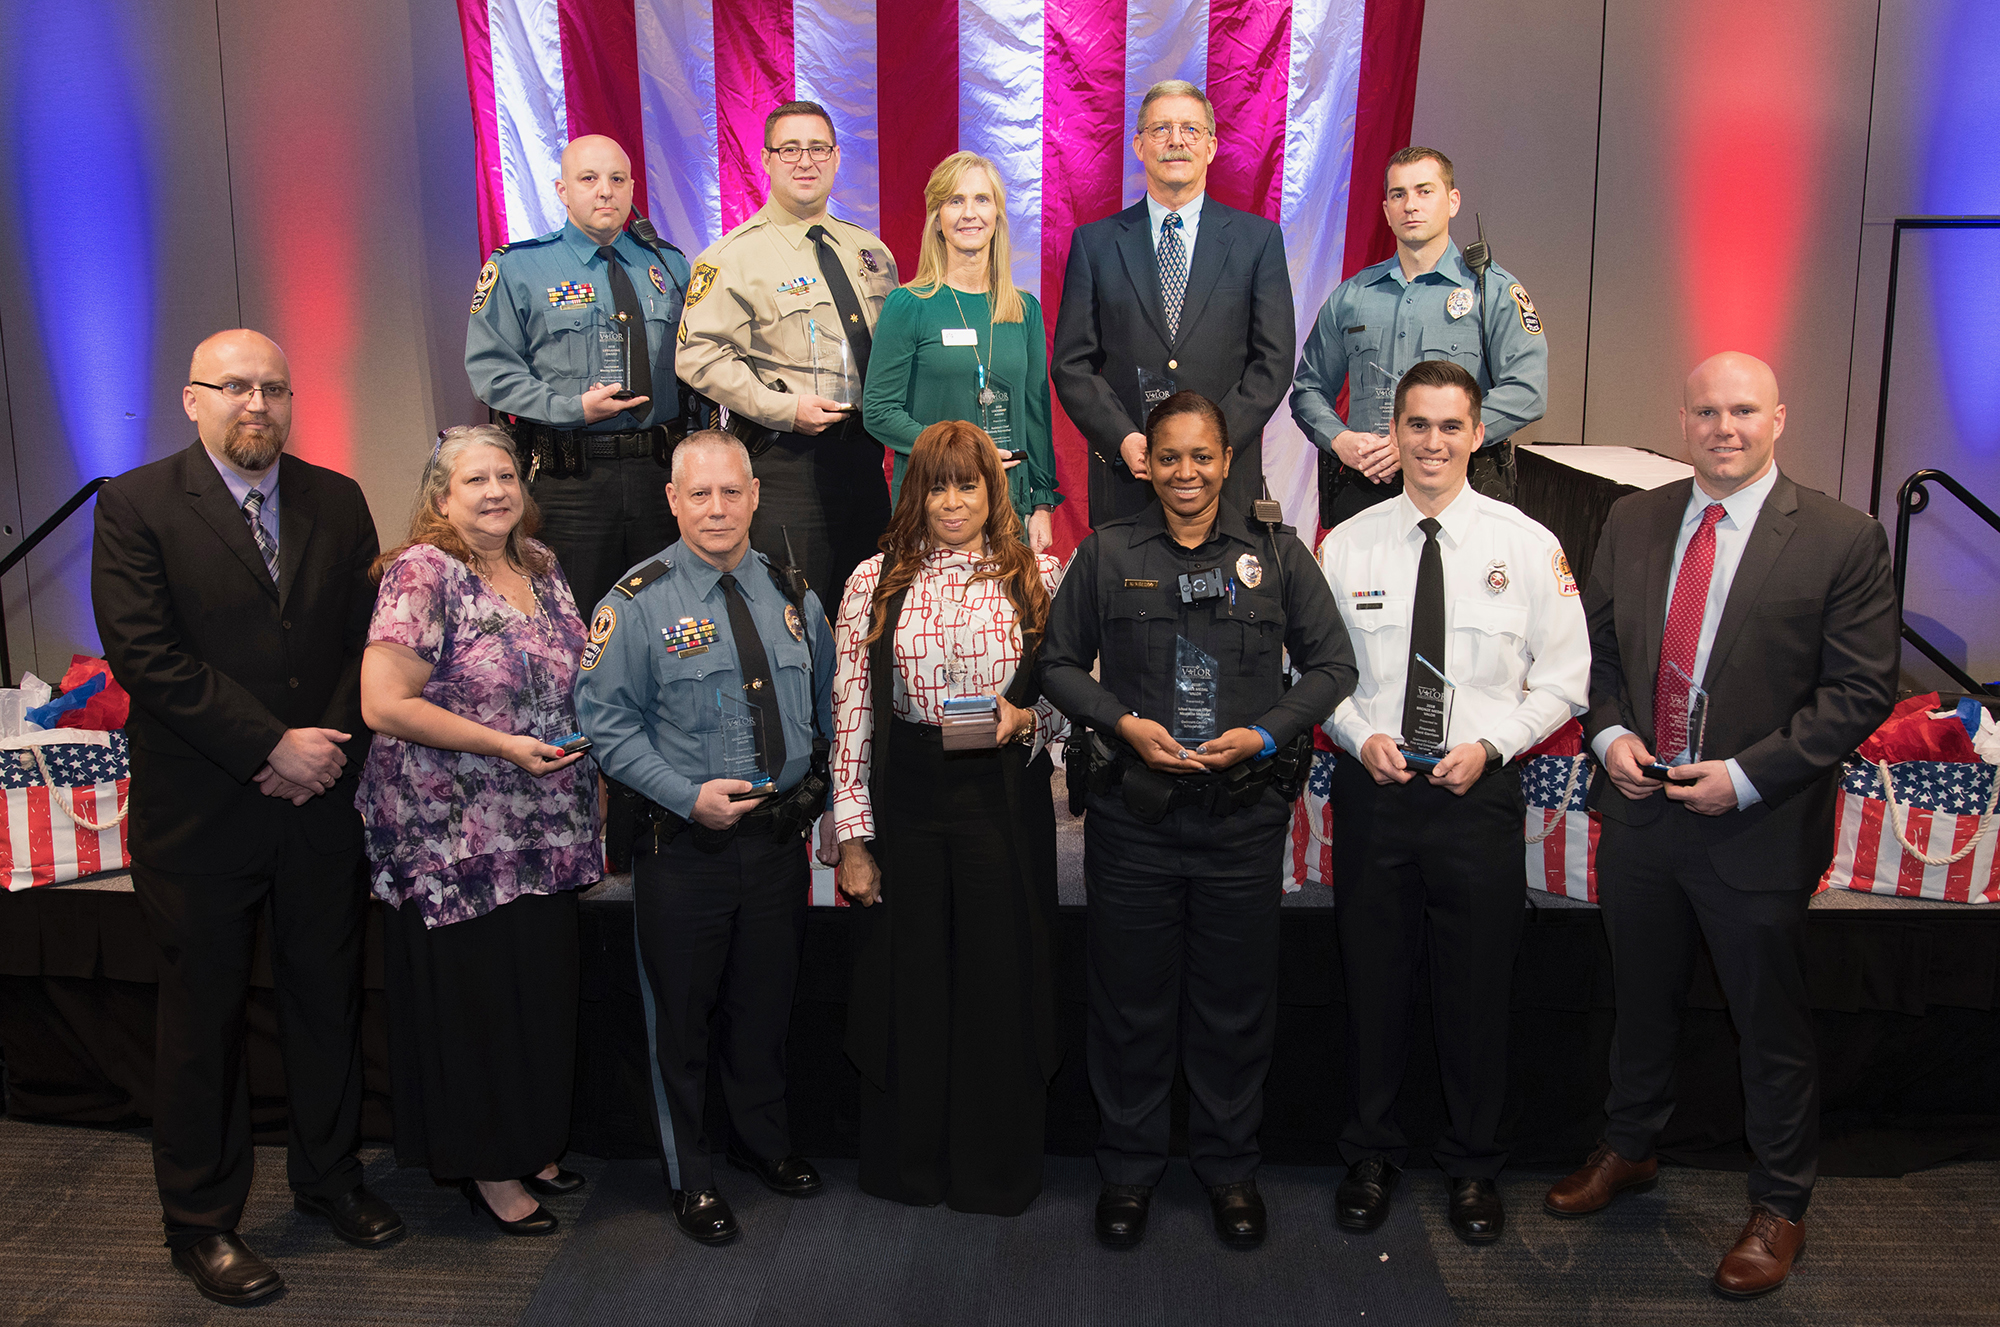 Public safety professionals receive top honors for bravery